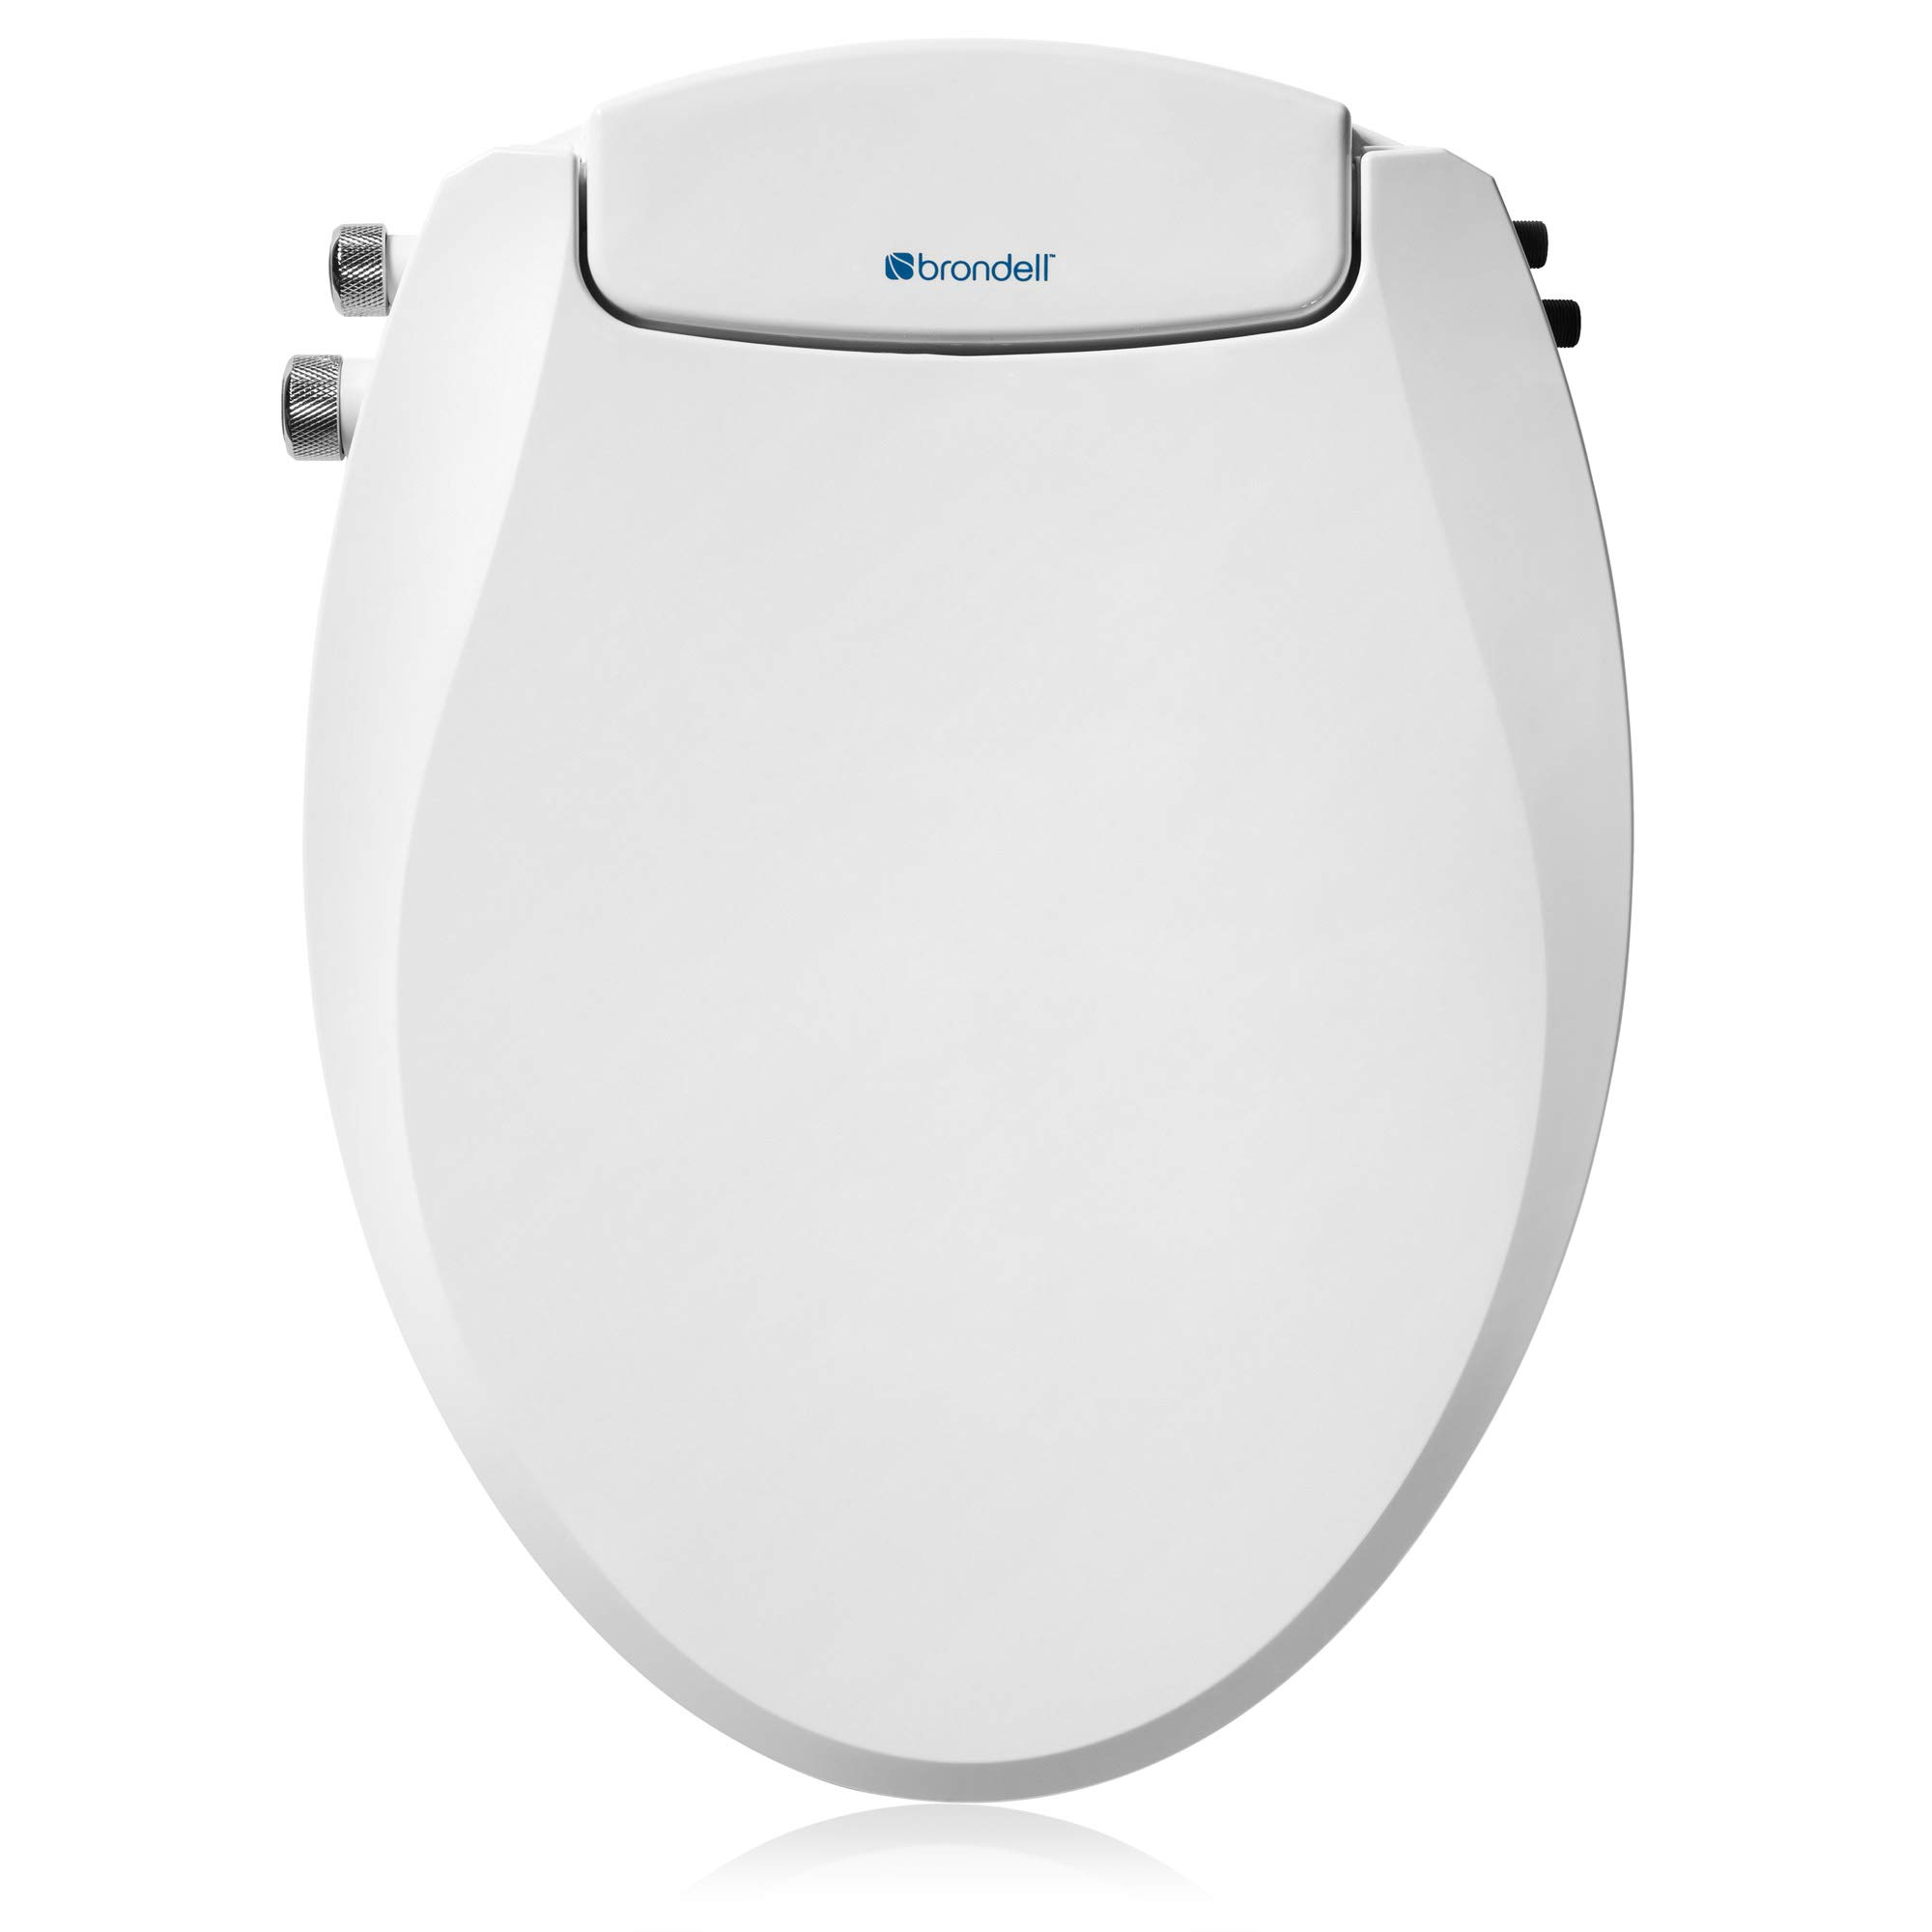 Brondell Swash Non-Electric Bidet Toilet Seat, Dual Temperature, Fits Round Toilets, White – Dual Nozzle System – Bidet with Easy Installation